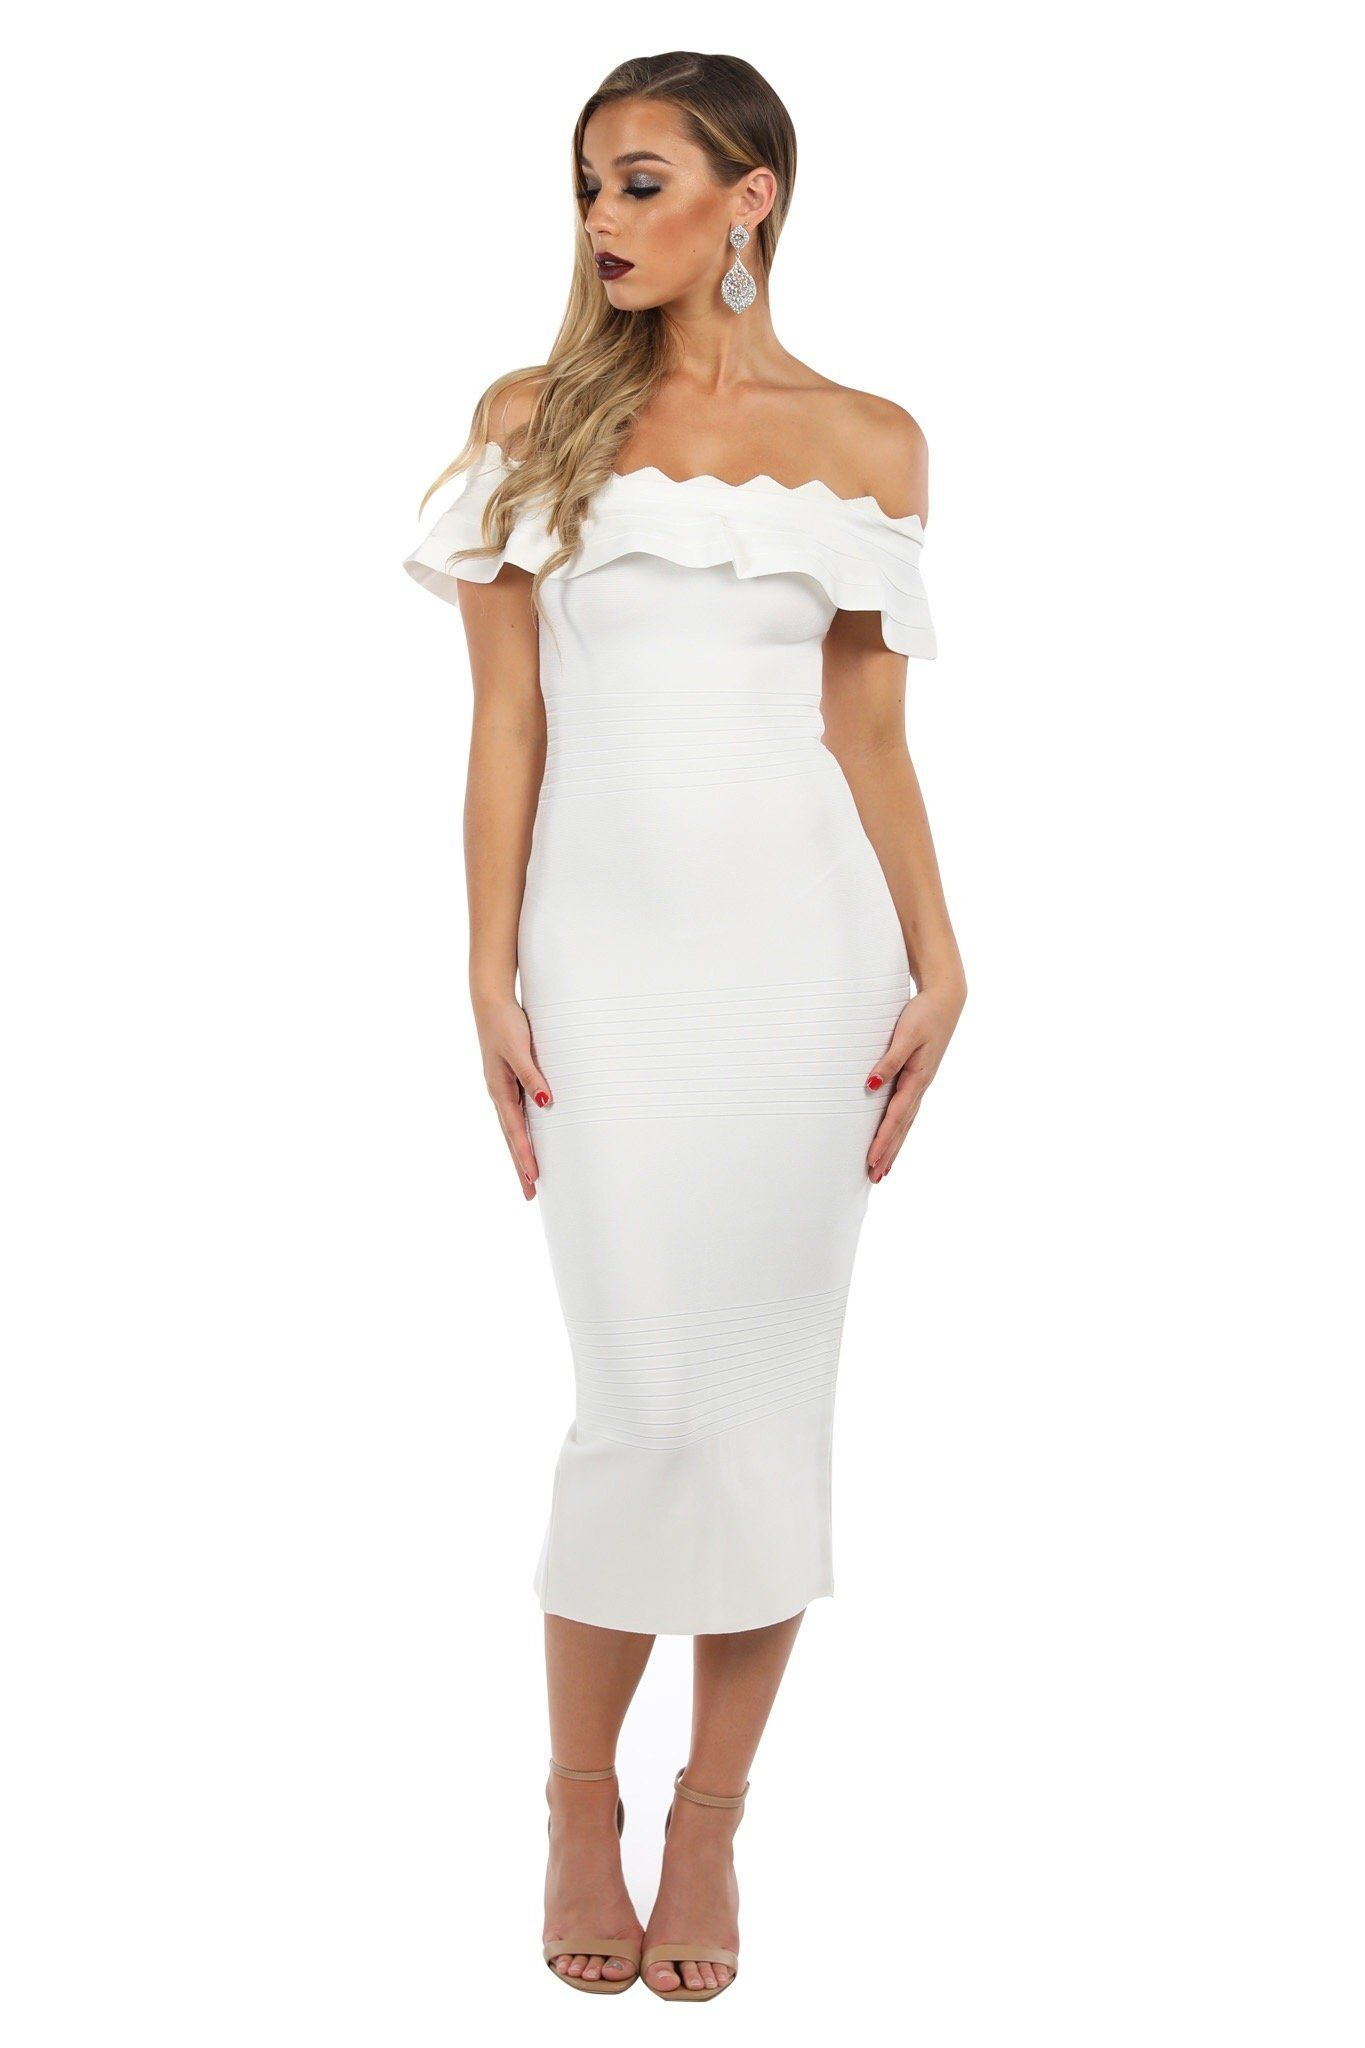 White below knee length bodycon bandage dress features off the shoulder ruffled neck, cap sleeves and back slit